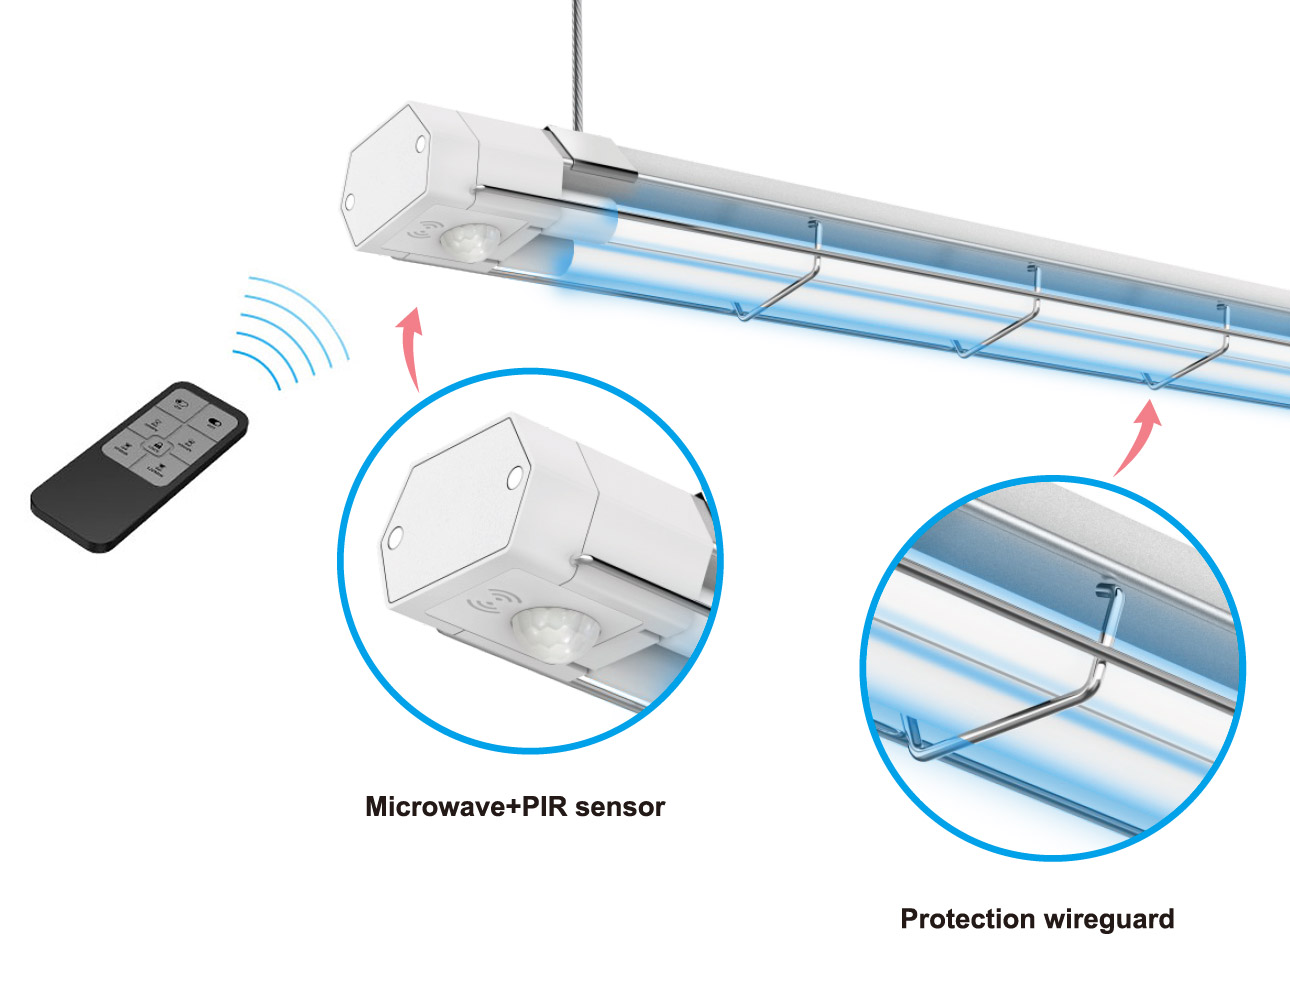 PurpleTube Unit - Protections